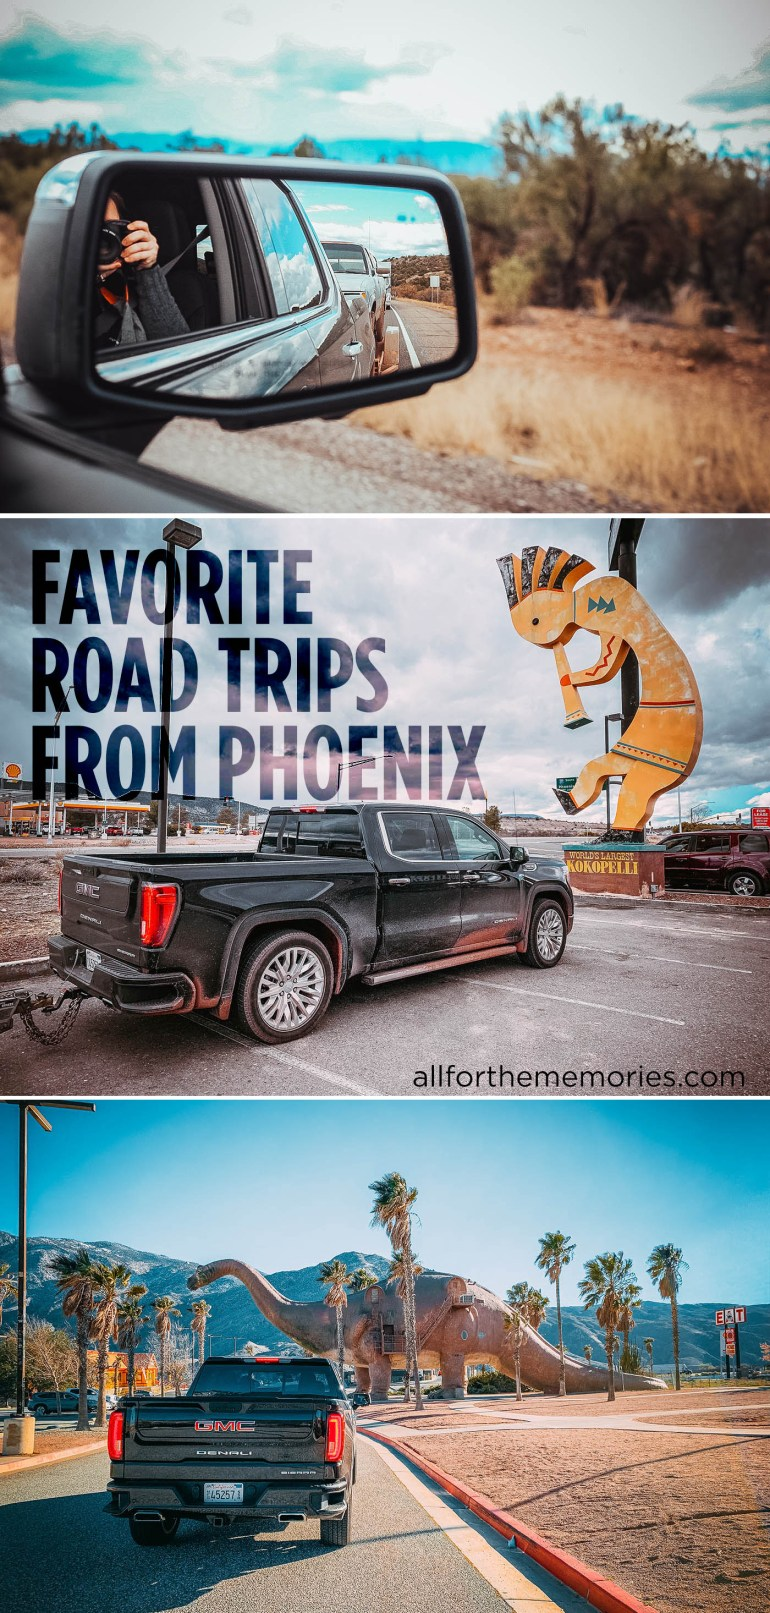 Favorite road trips from Phoenix (you can get to all of these places in less than 6 hours)